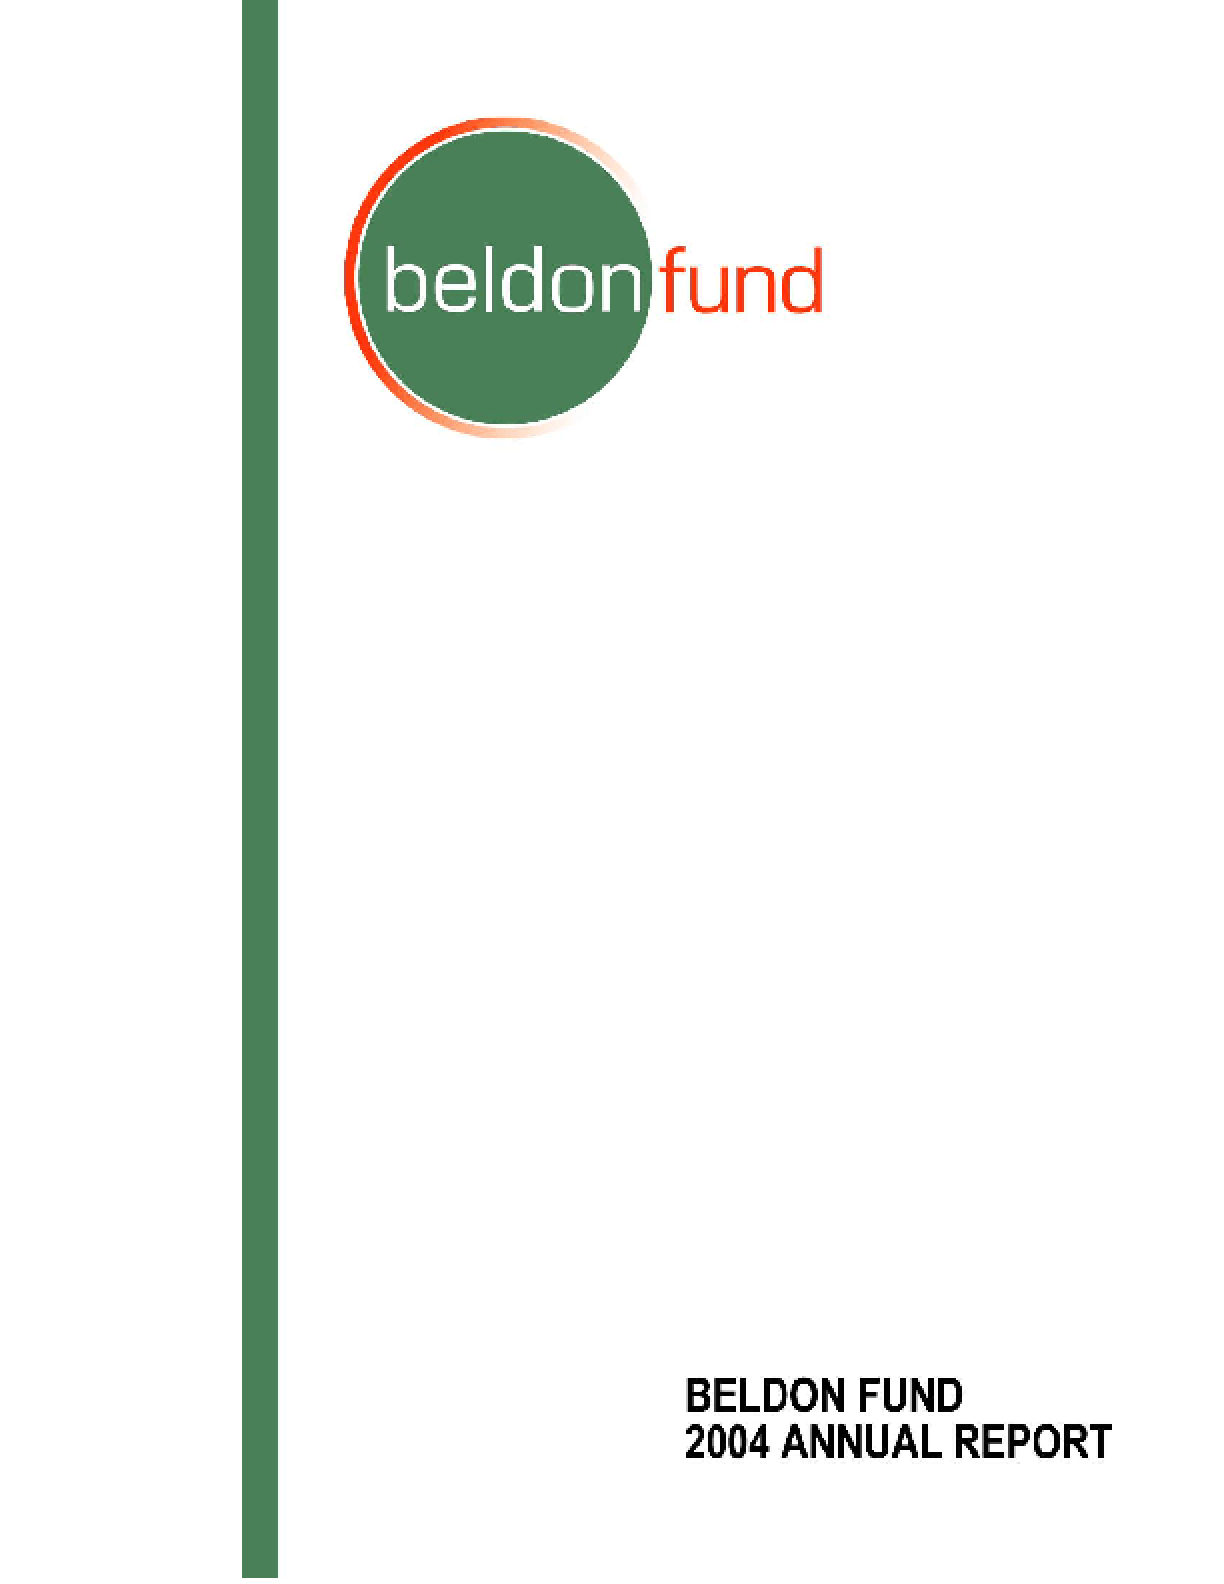 Beldon Fund - 2004 Annual Report